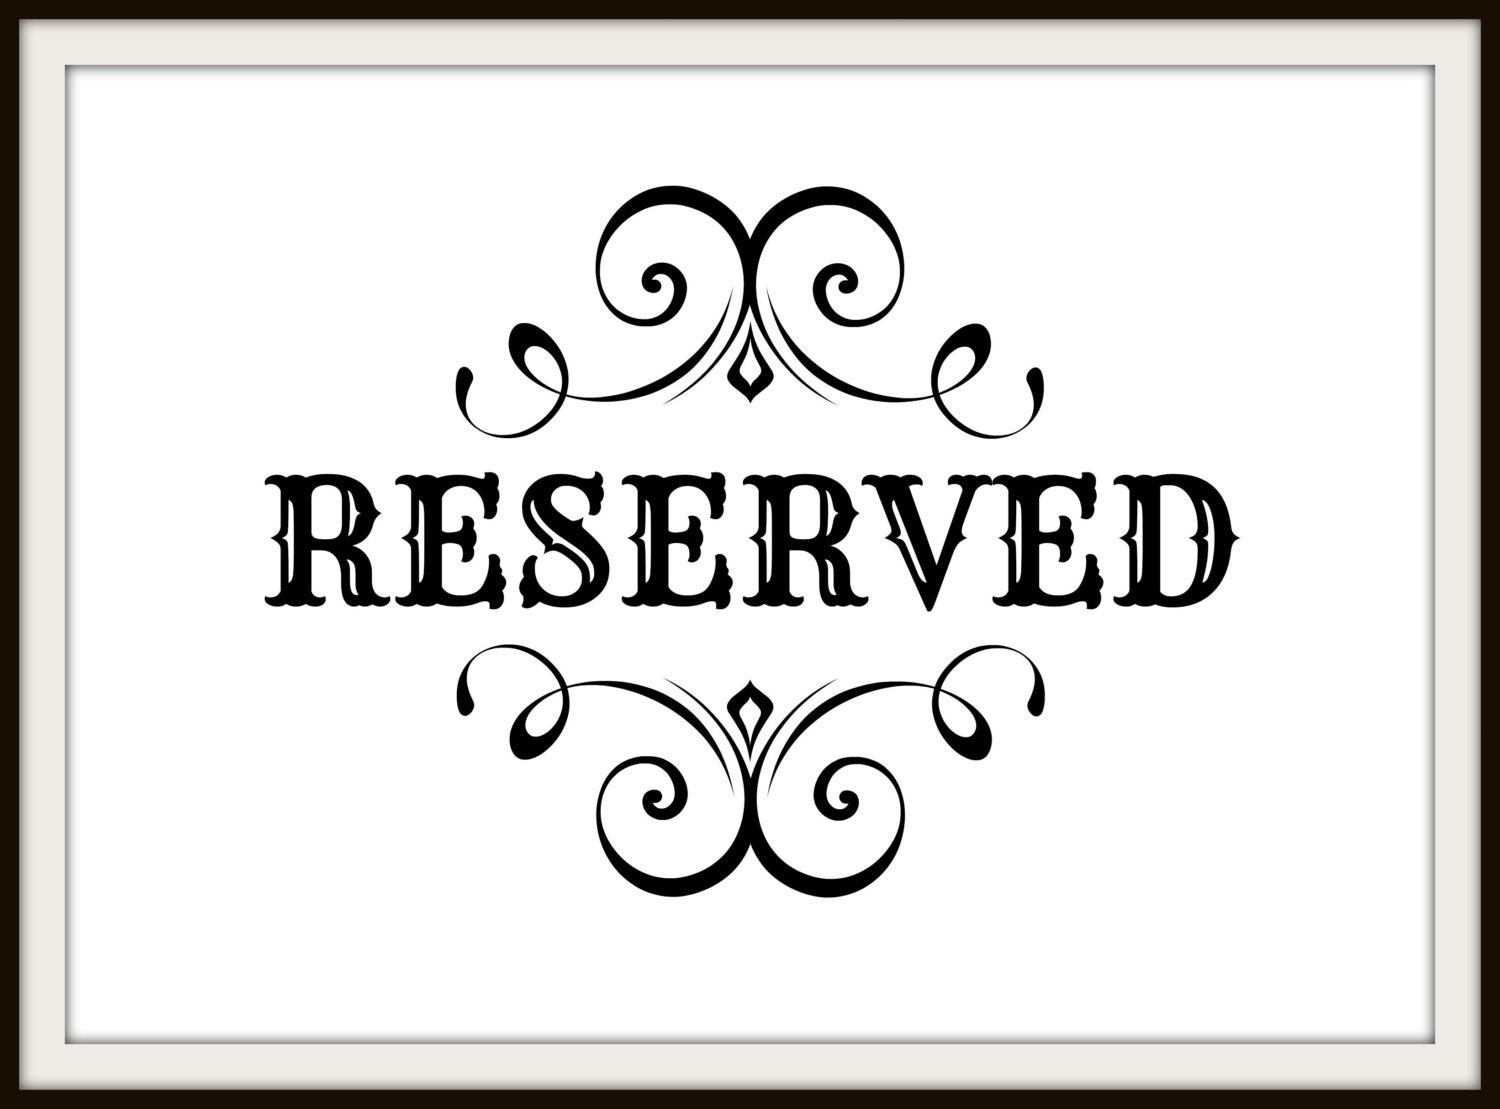 Clean image with printable reserved sign